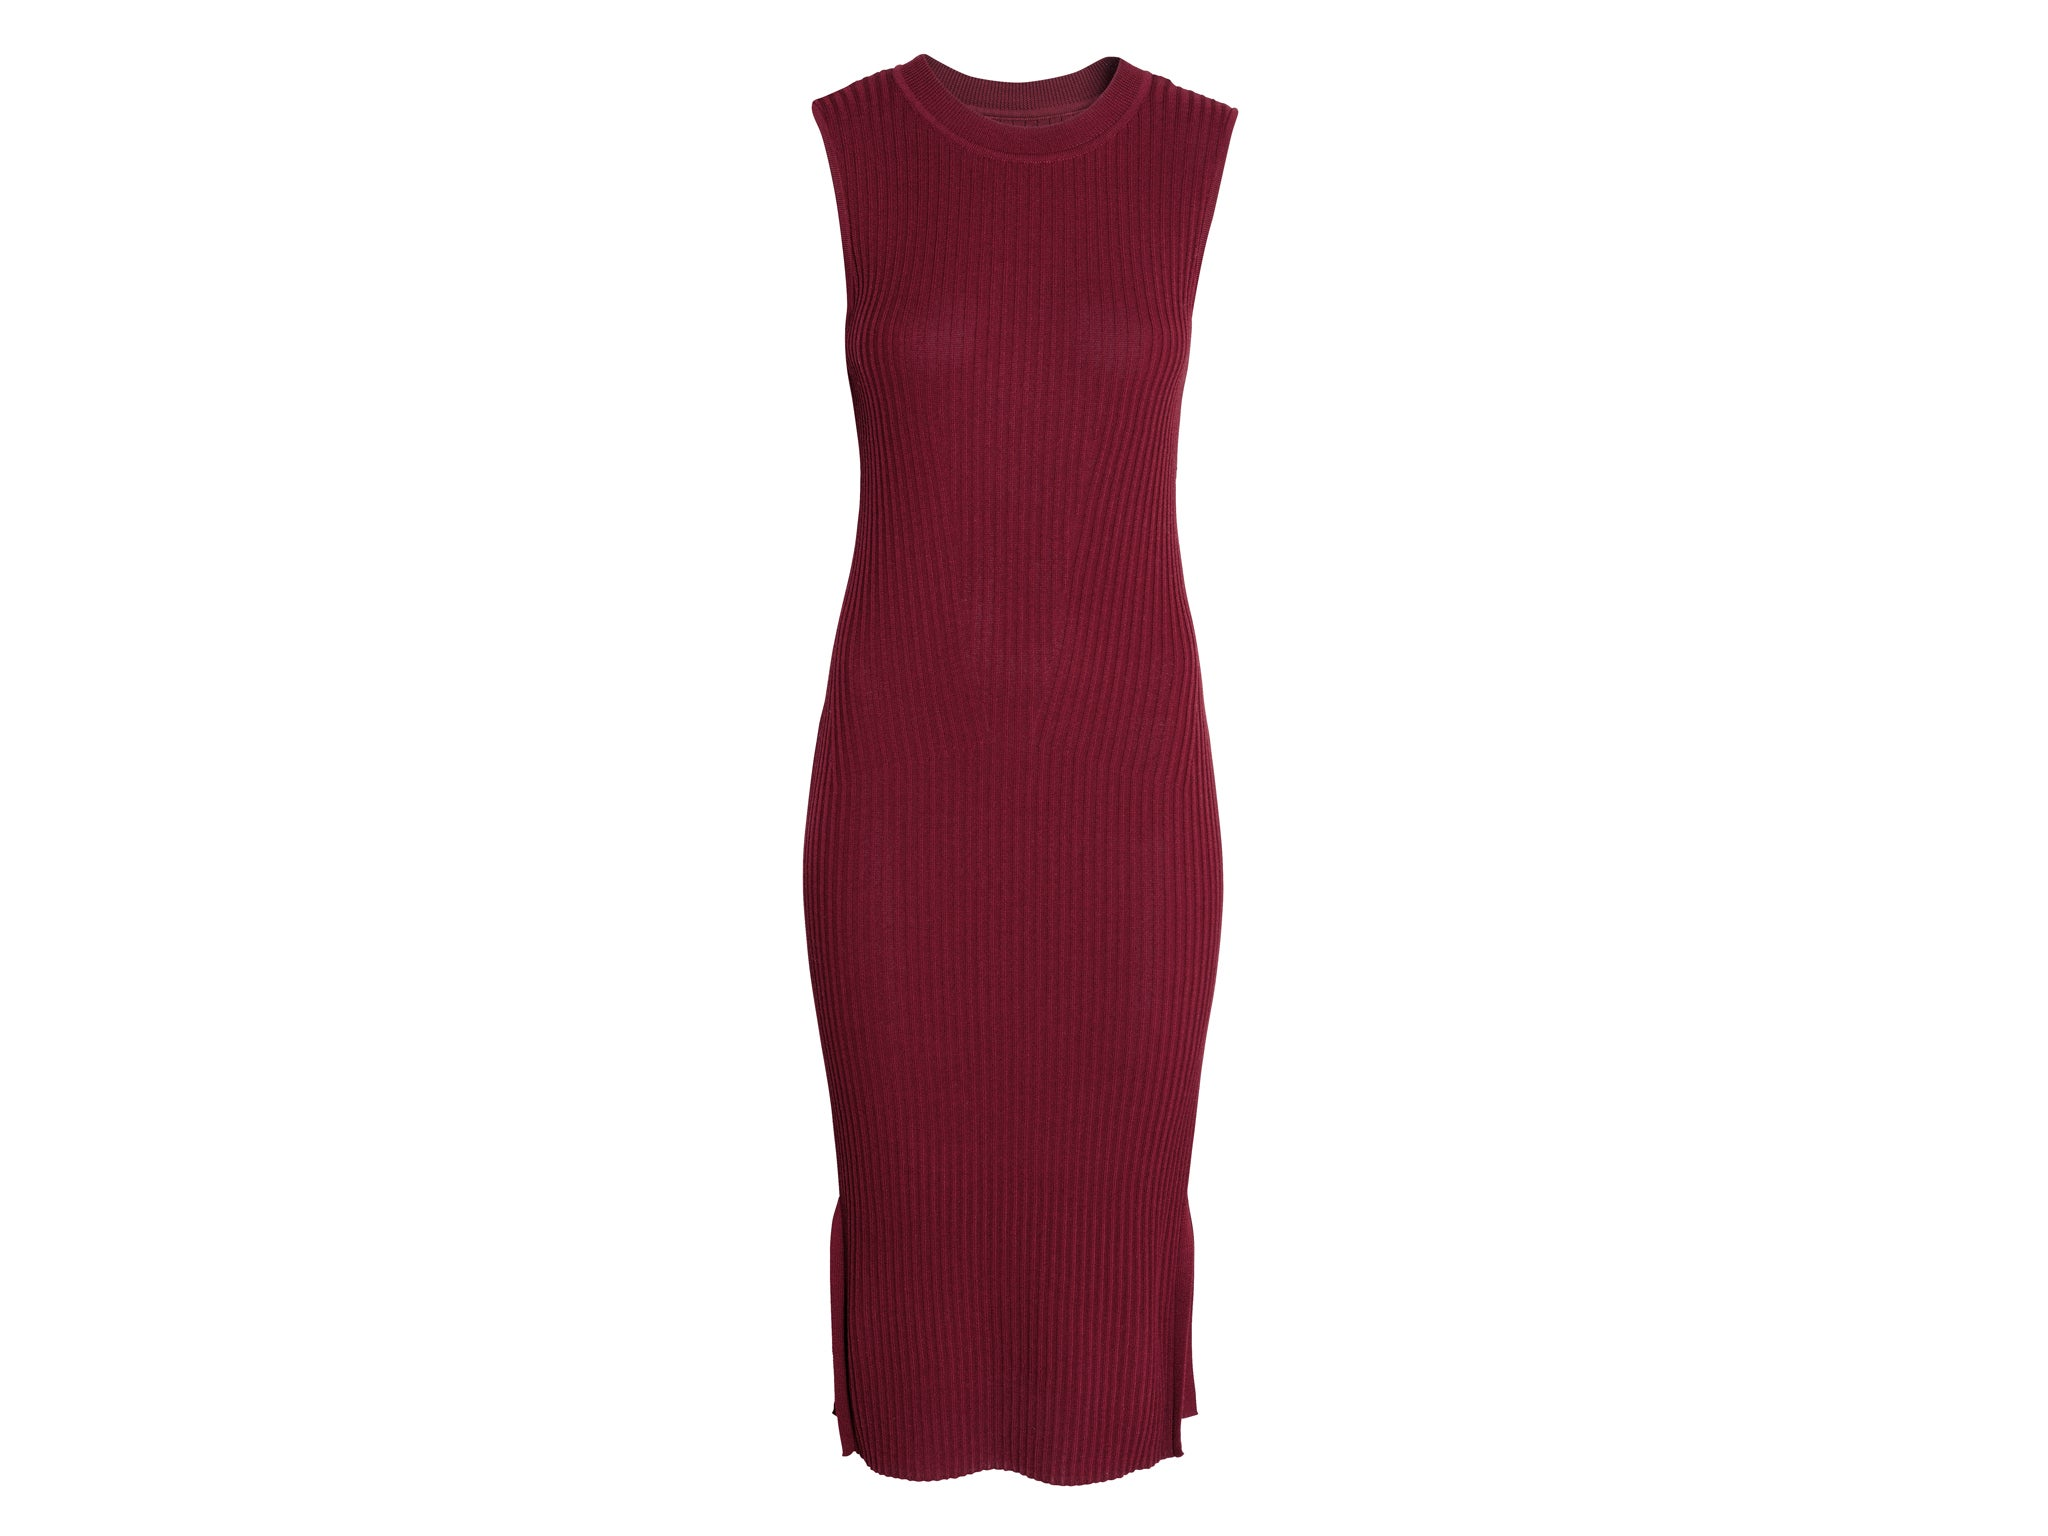 764f6aae666d 11 best knitted dresses | The Independent